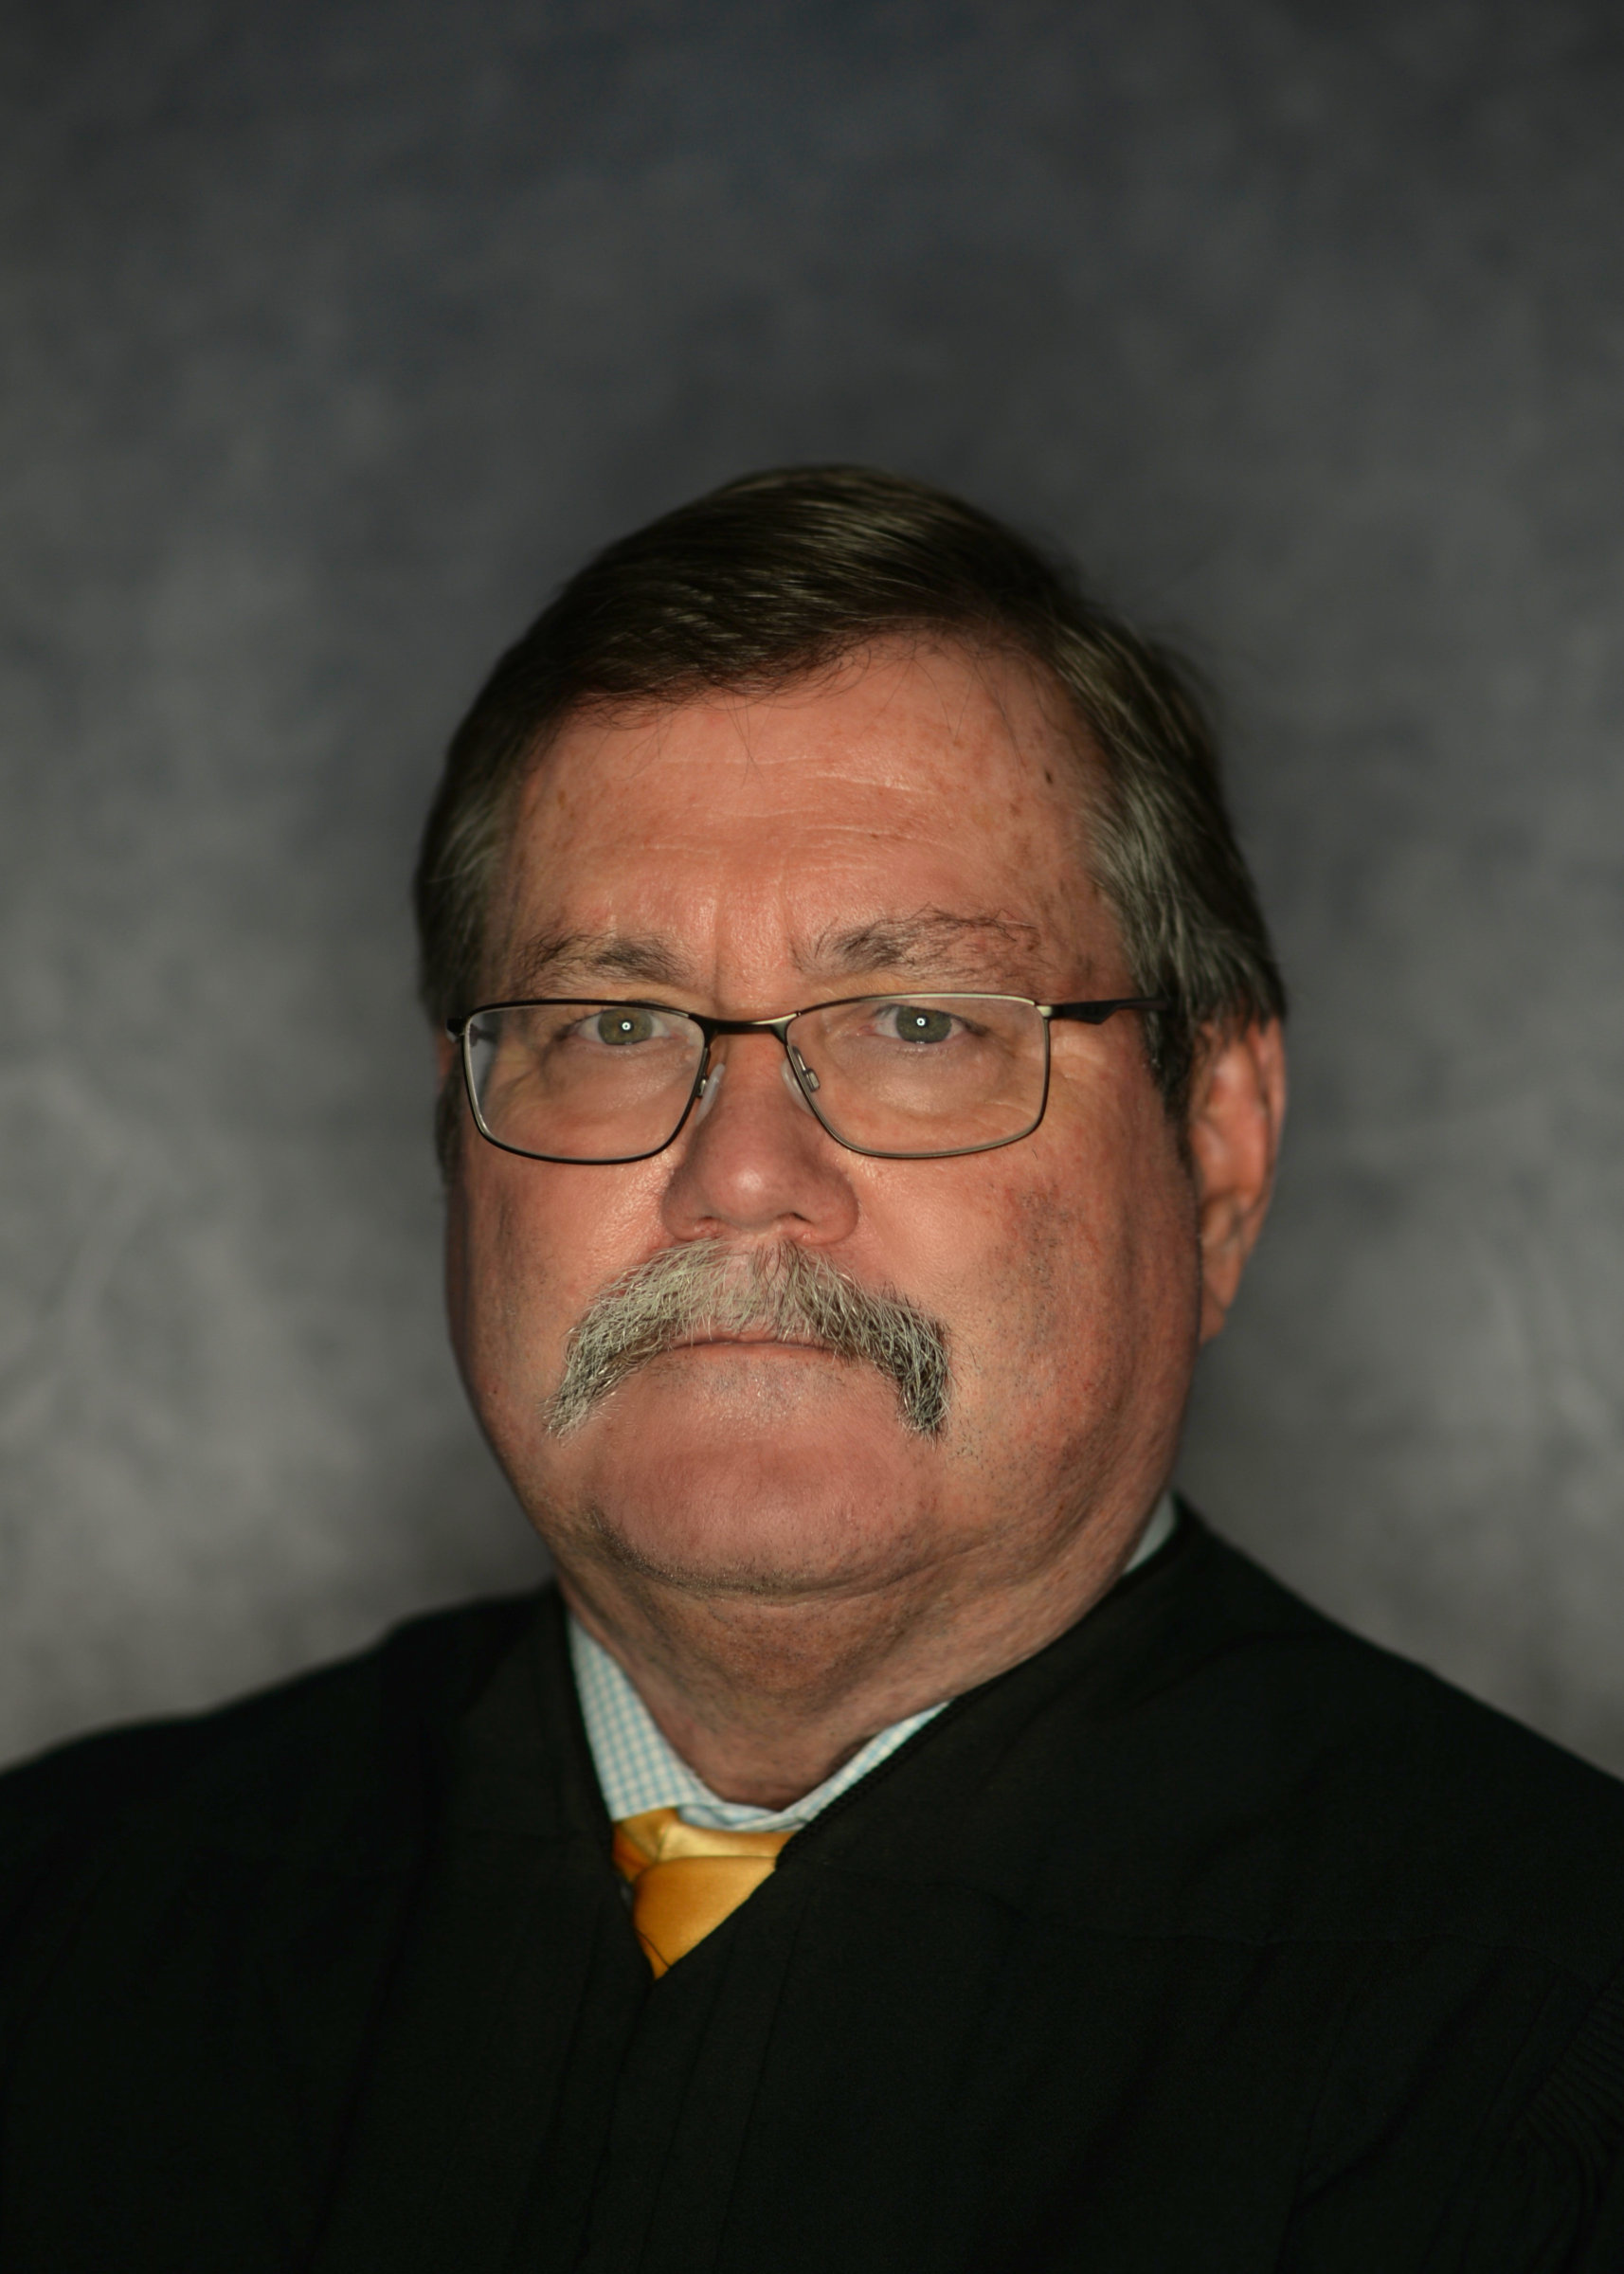 Judge Browning